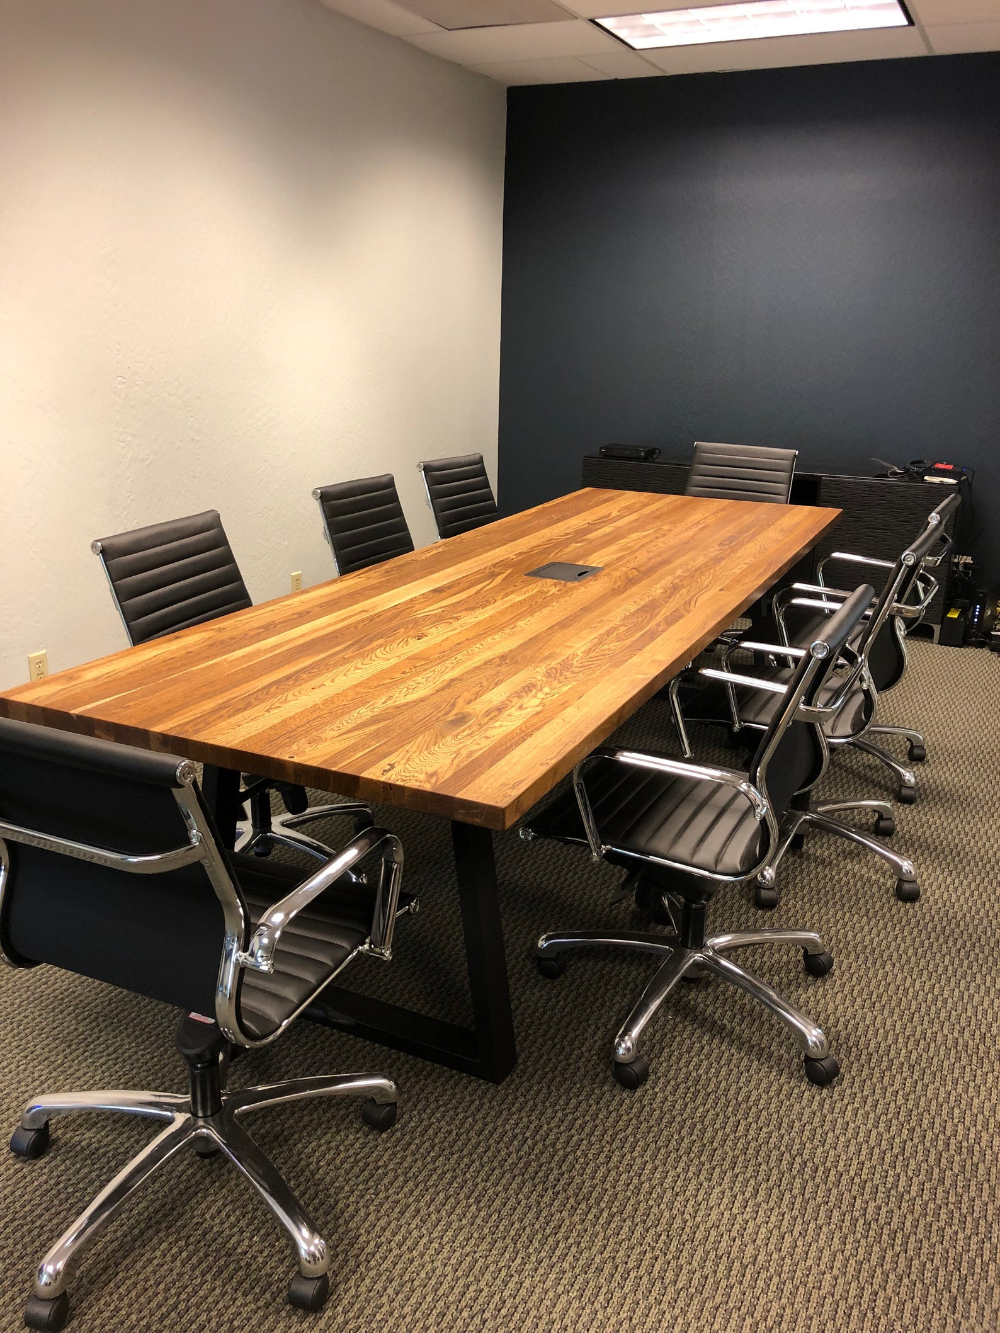 Industrial Reclaimed Wood Conference Table Chairs Reclaimed Oak Table Natural Wood Top Powder Coated Metal Legs In 2020 Reclaimed Wood Conference Table Wood Conference Table Conference Table